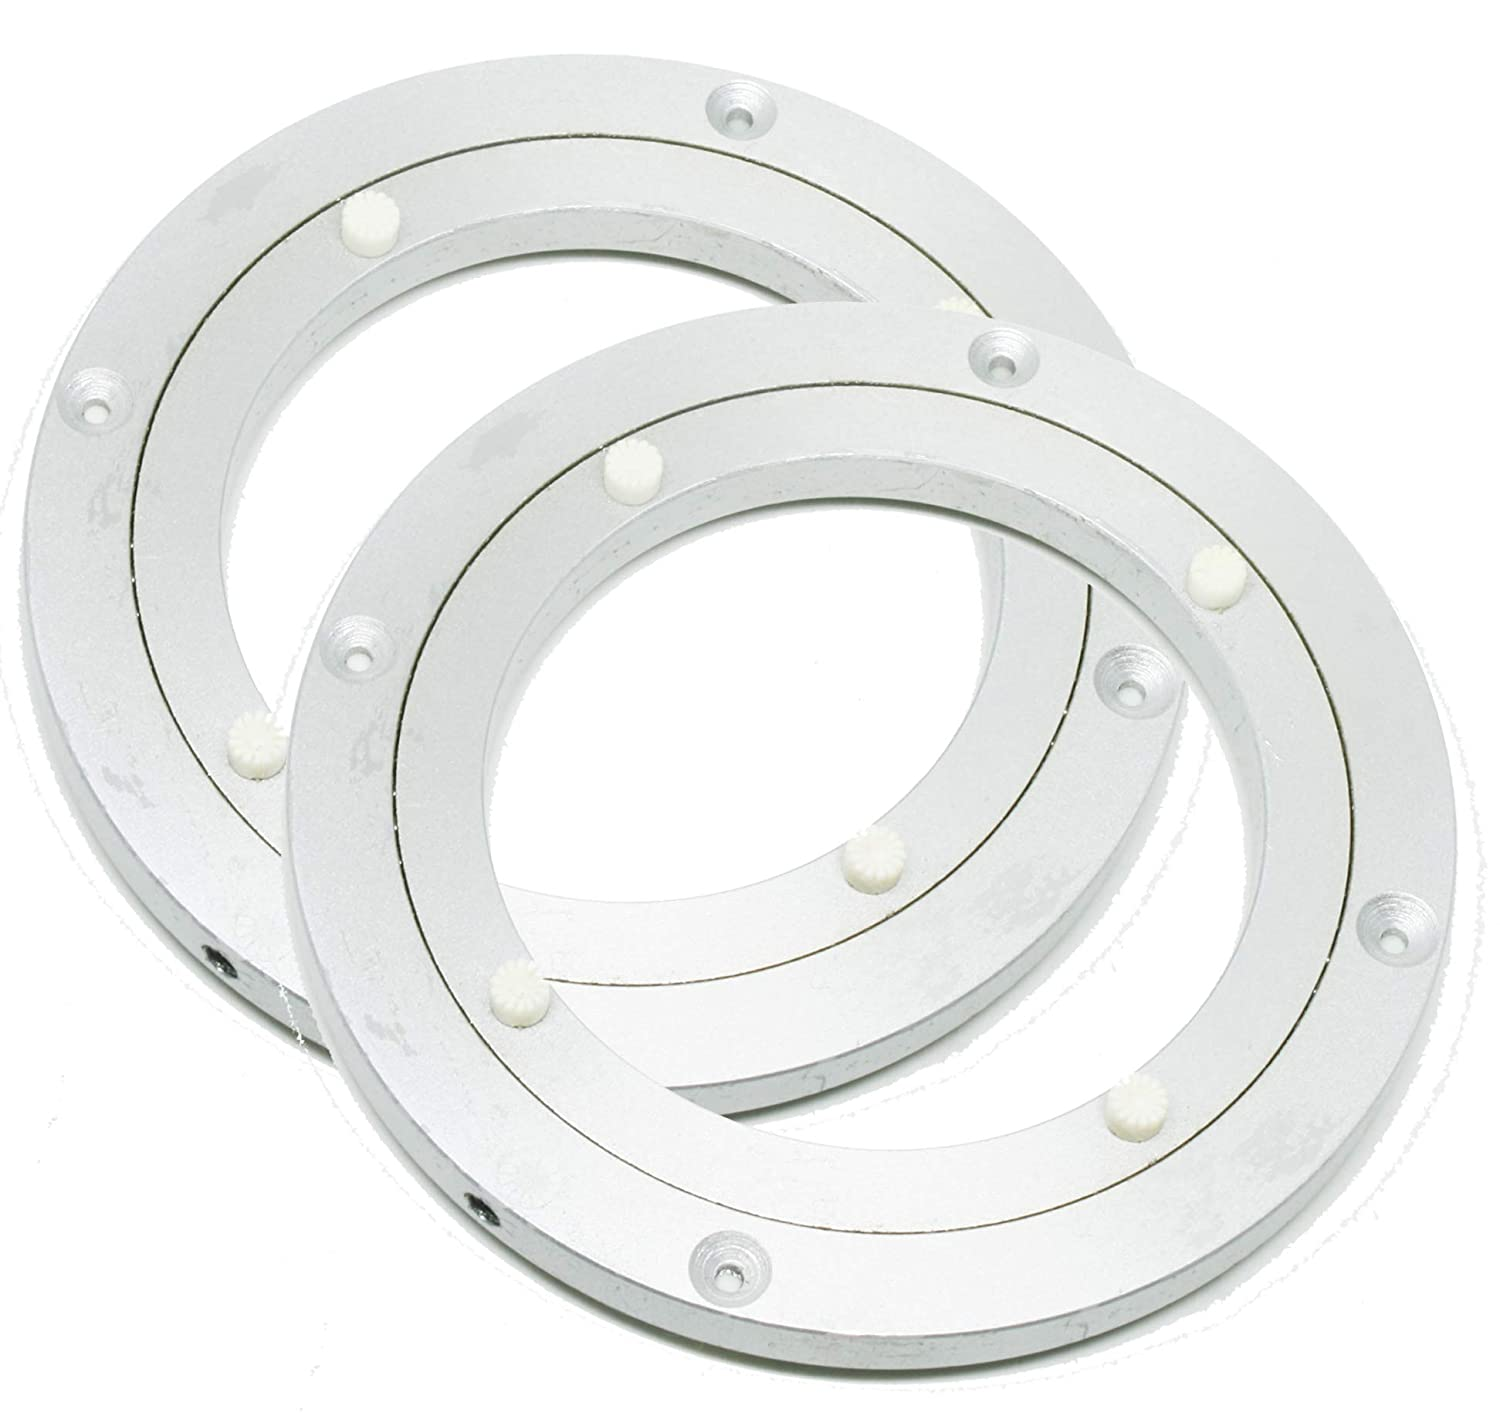 "120mm 4.5"" inch Aluminum Lazy Susan Turntable Bearings Pack of 2"